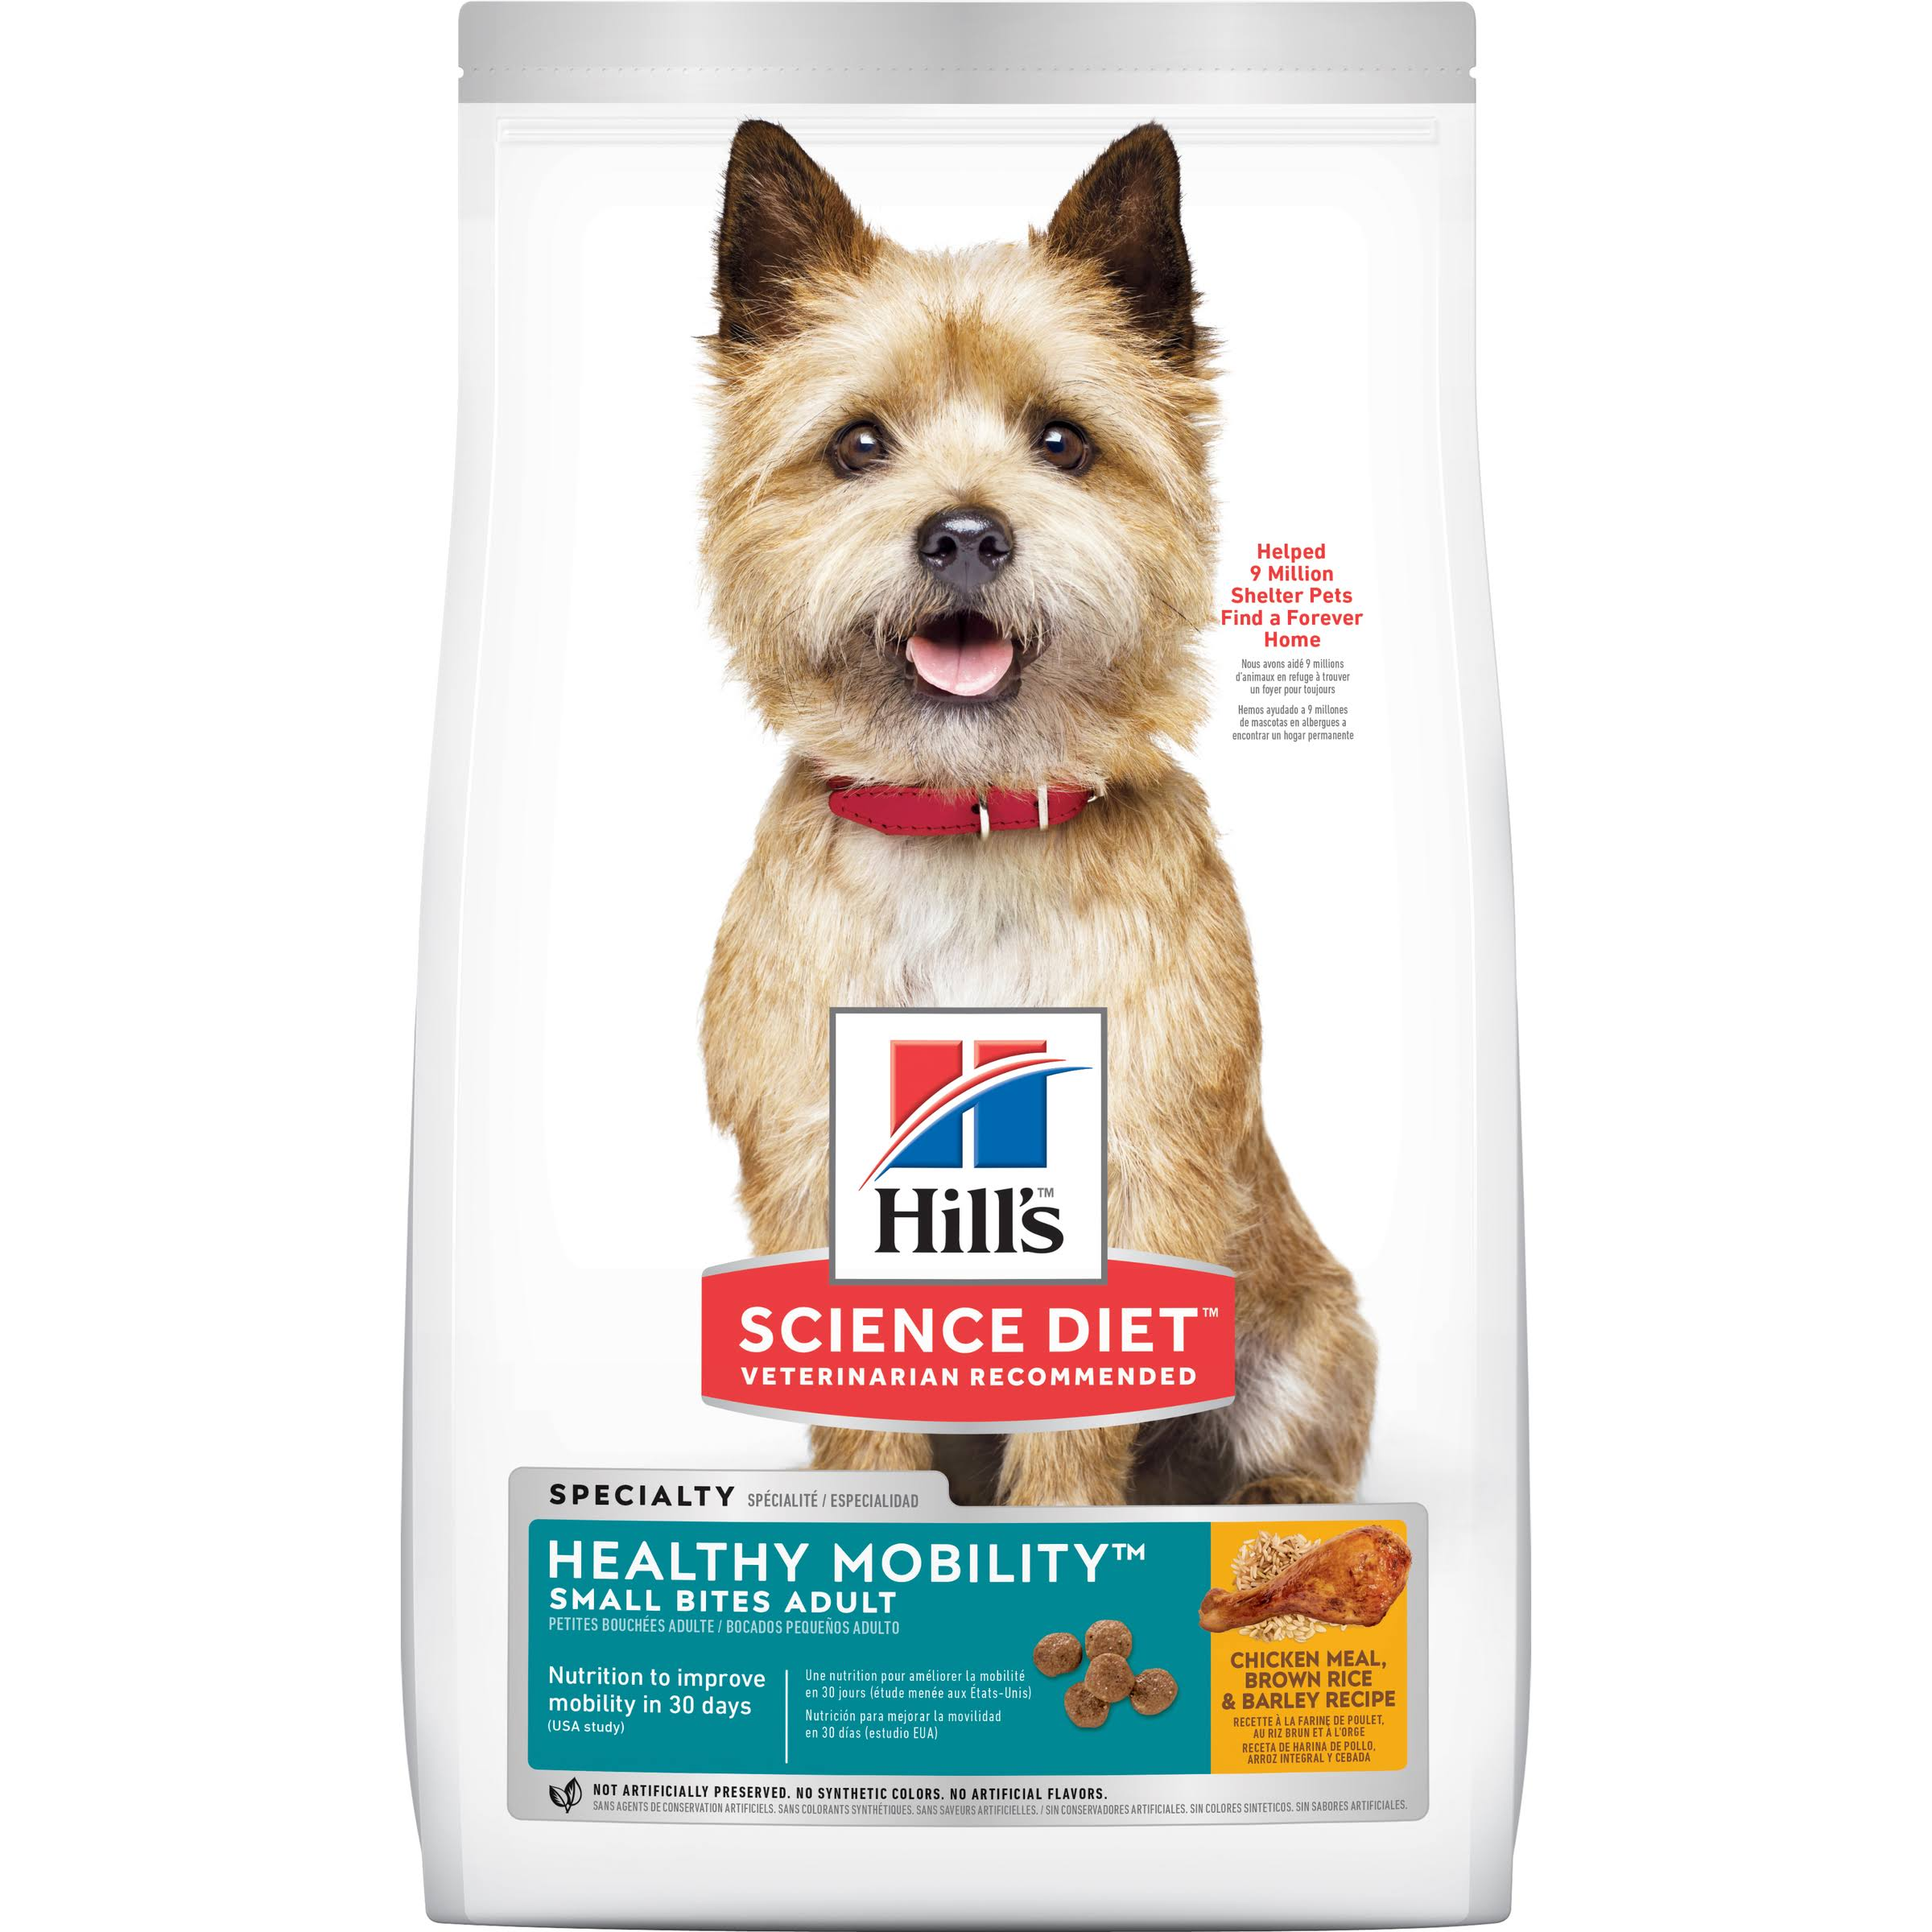 Hill's Science Diet Small Bites Dog Food - Adult, 15.5lb, Chicken Meal & Rice Recipe